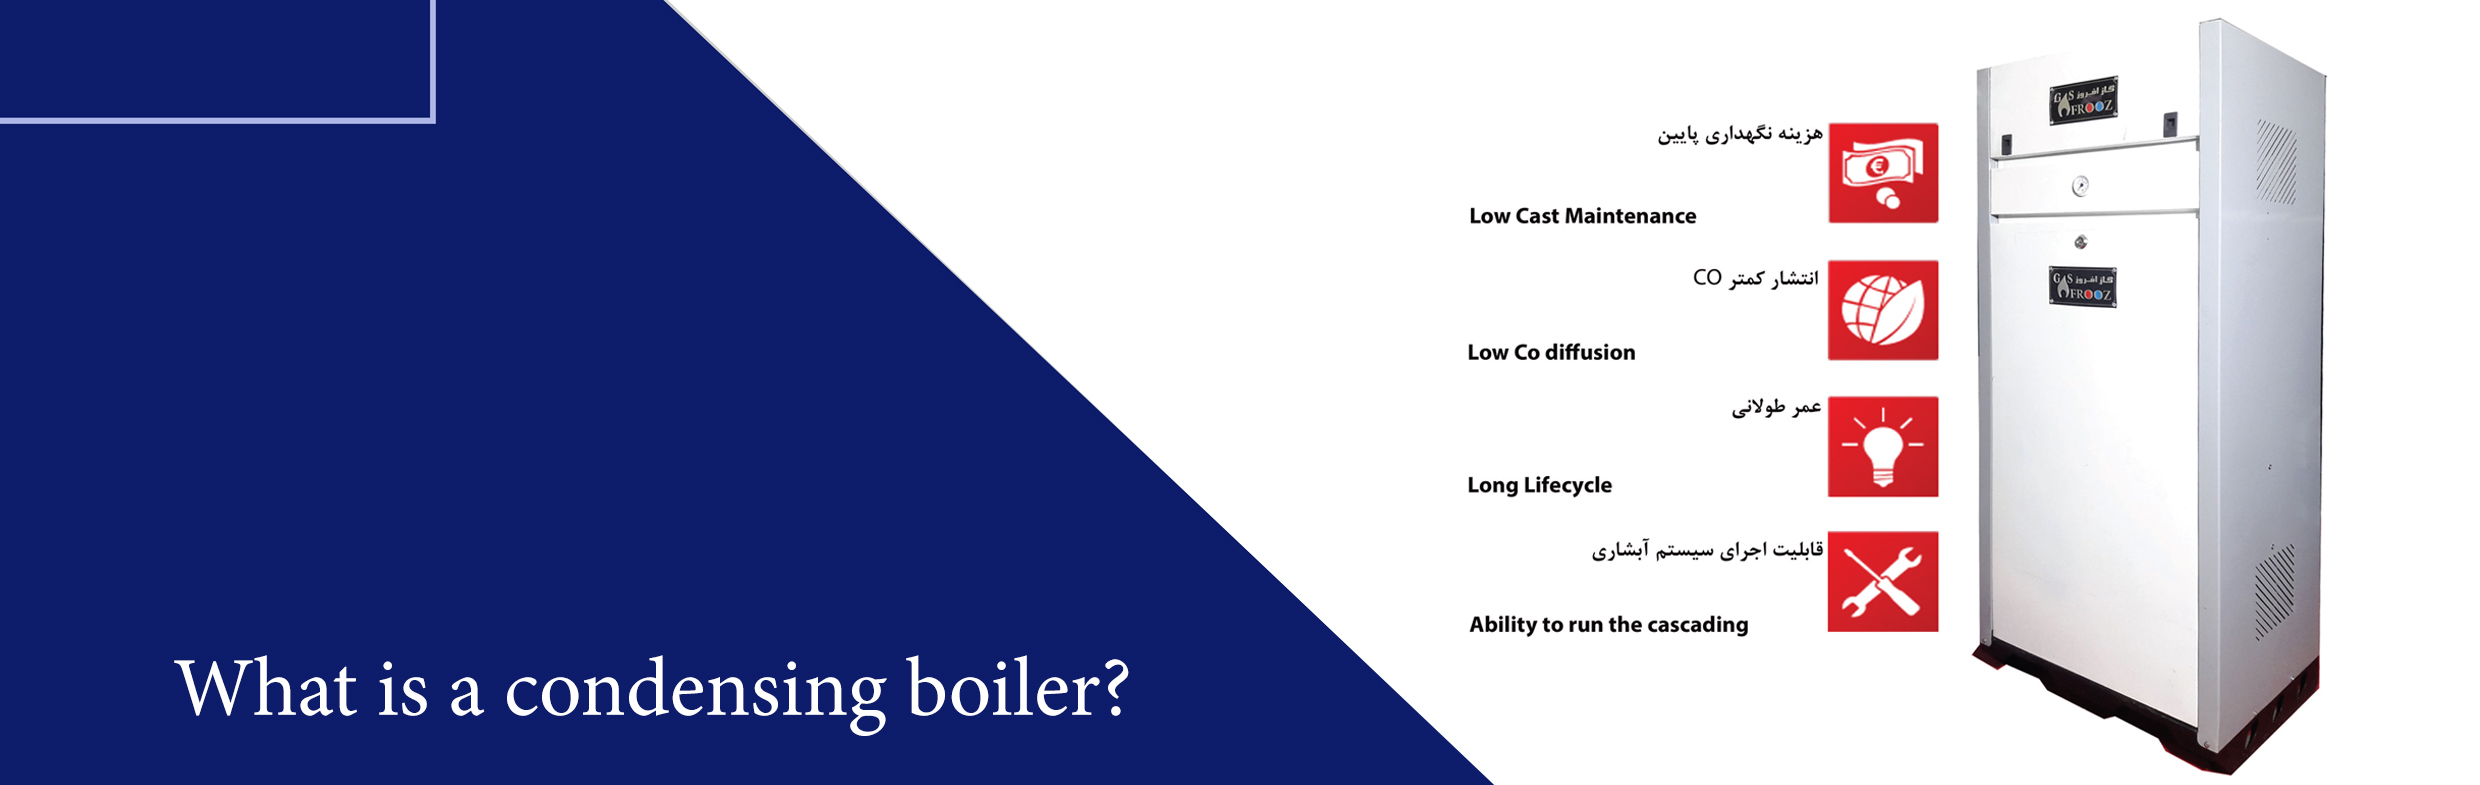 What is a condensing boiler and what is its use?